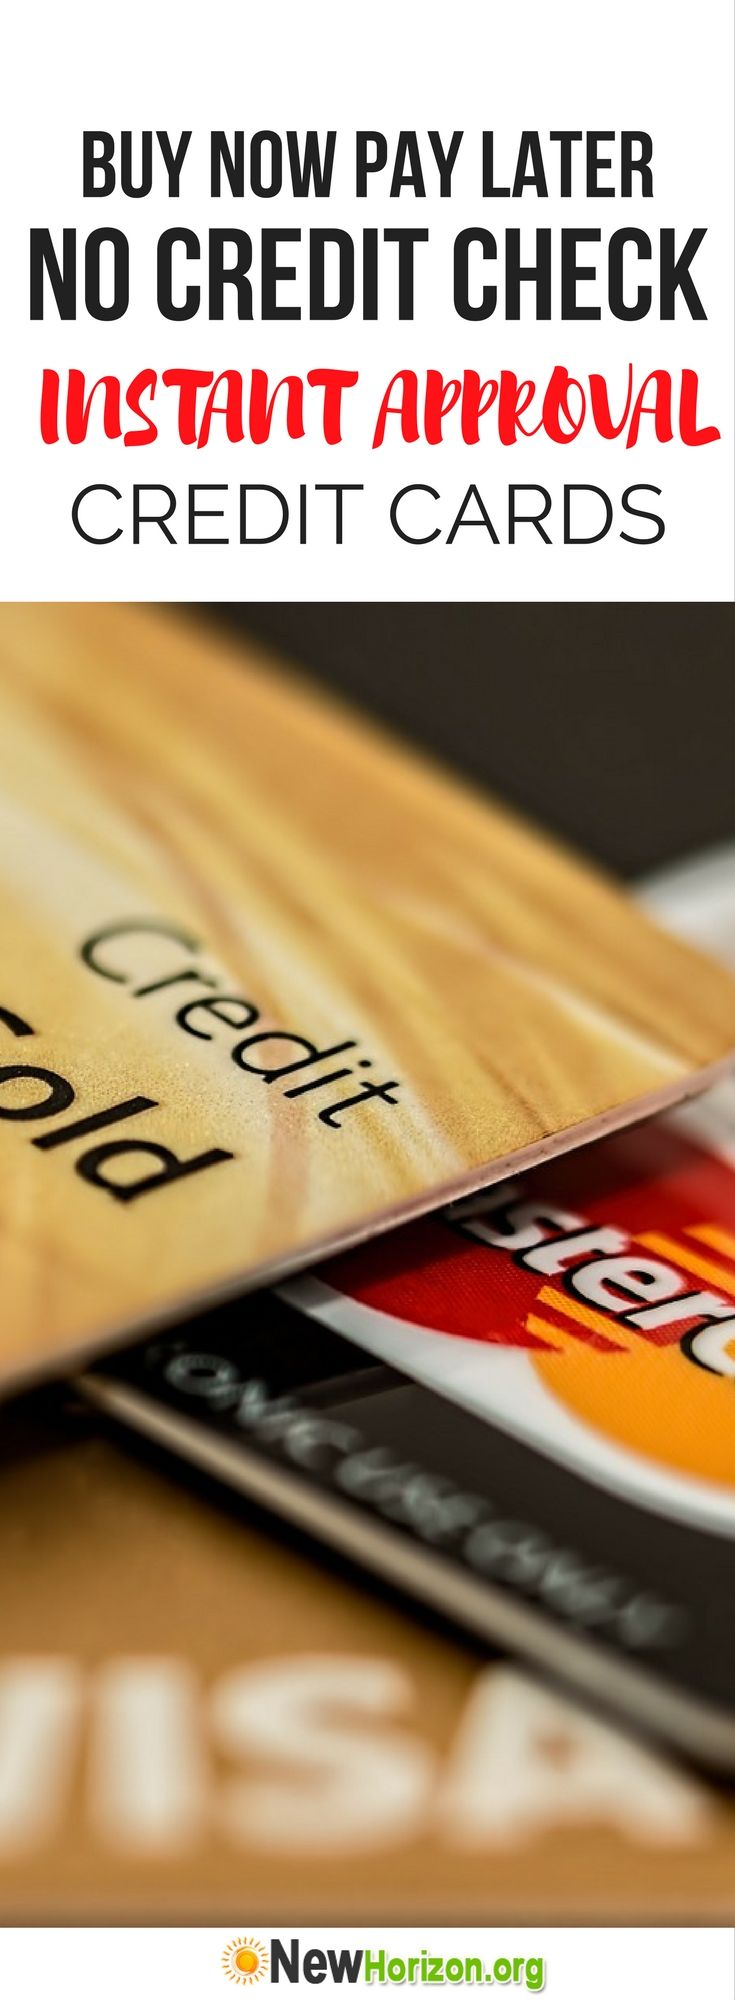 Merchandise Cards - Catalog Credit Cards   Credit check, Unsecured ...